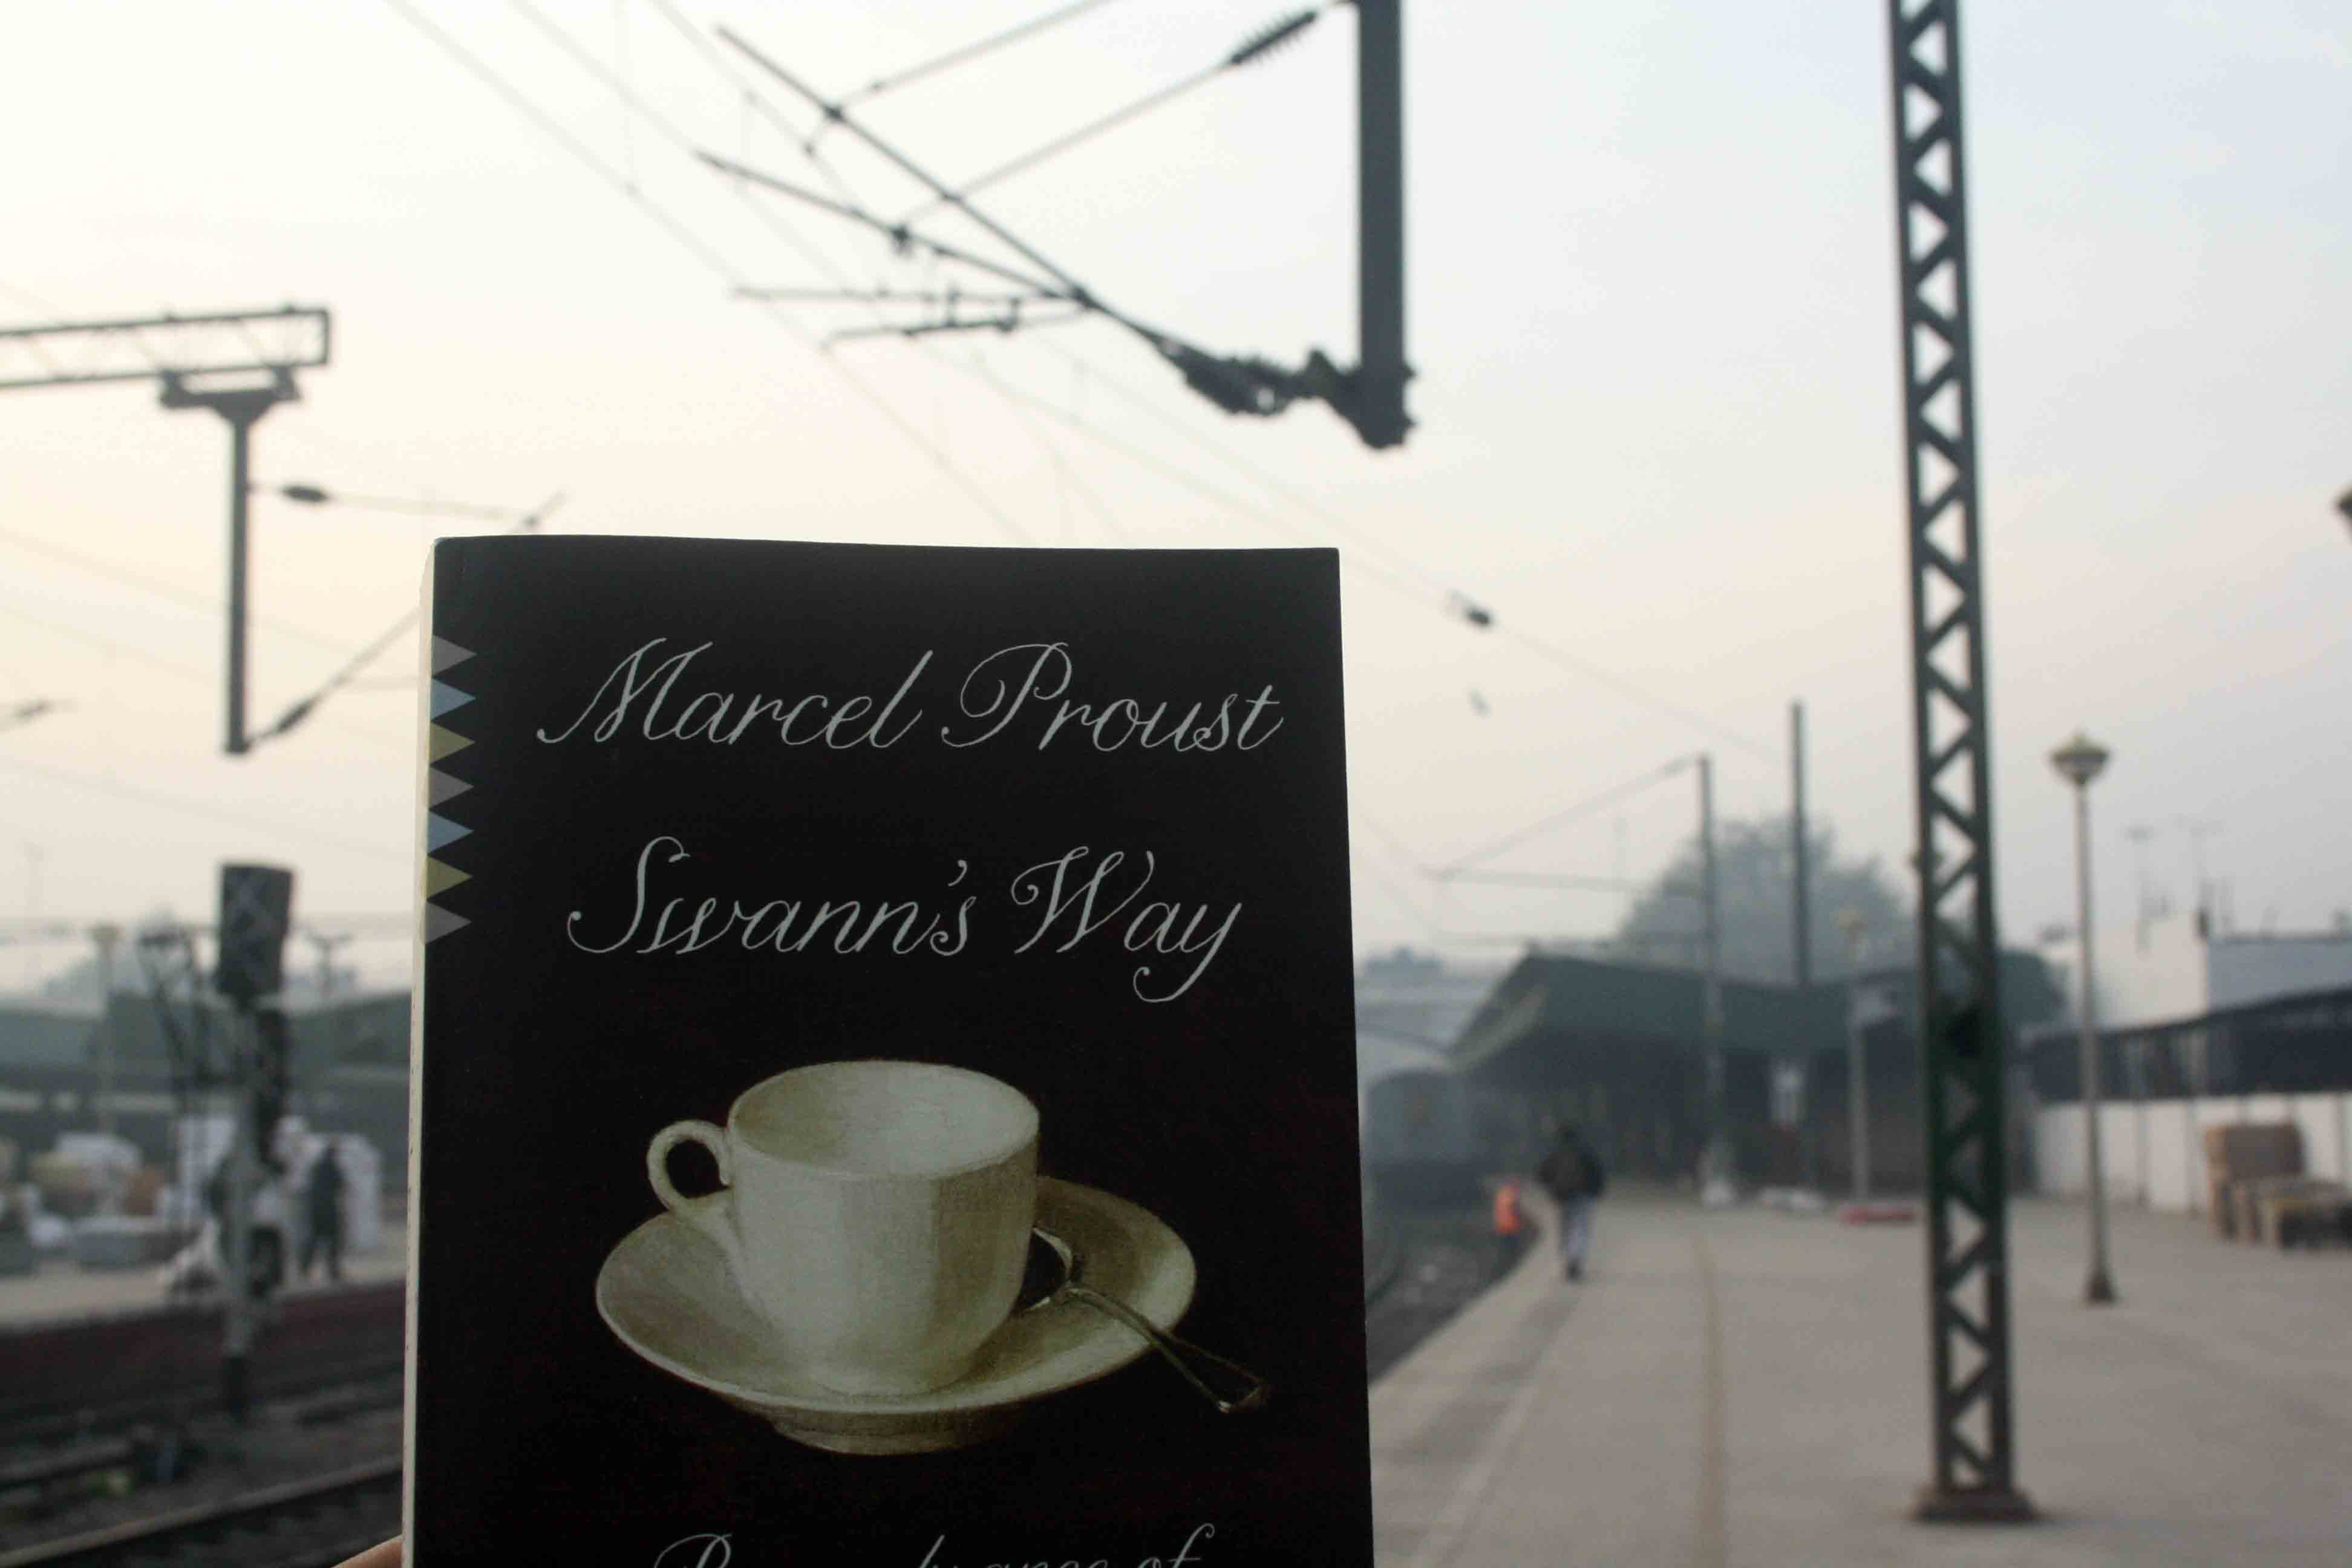 City Reading – The Delhi Proustians XXXVII, New Delhi Rail Station